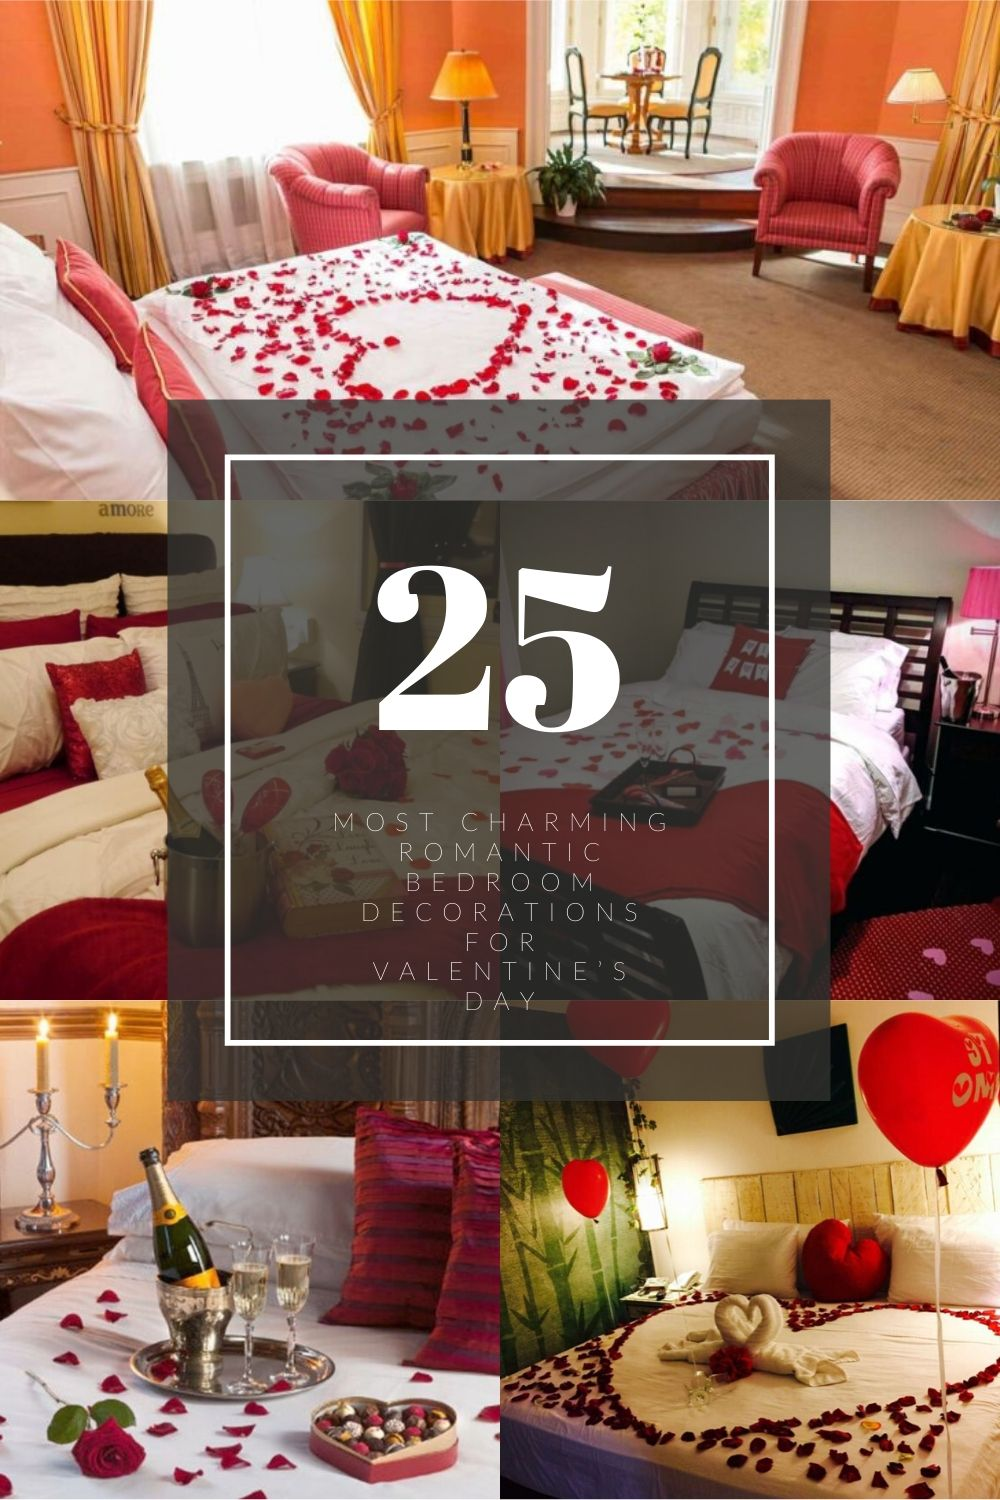 Most Charming Romantic Bedroom Decorations For Valentine's Day